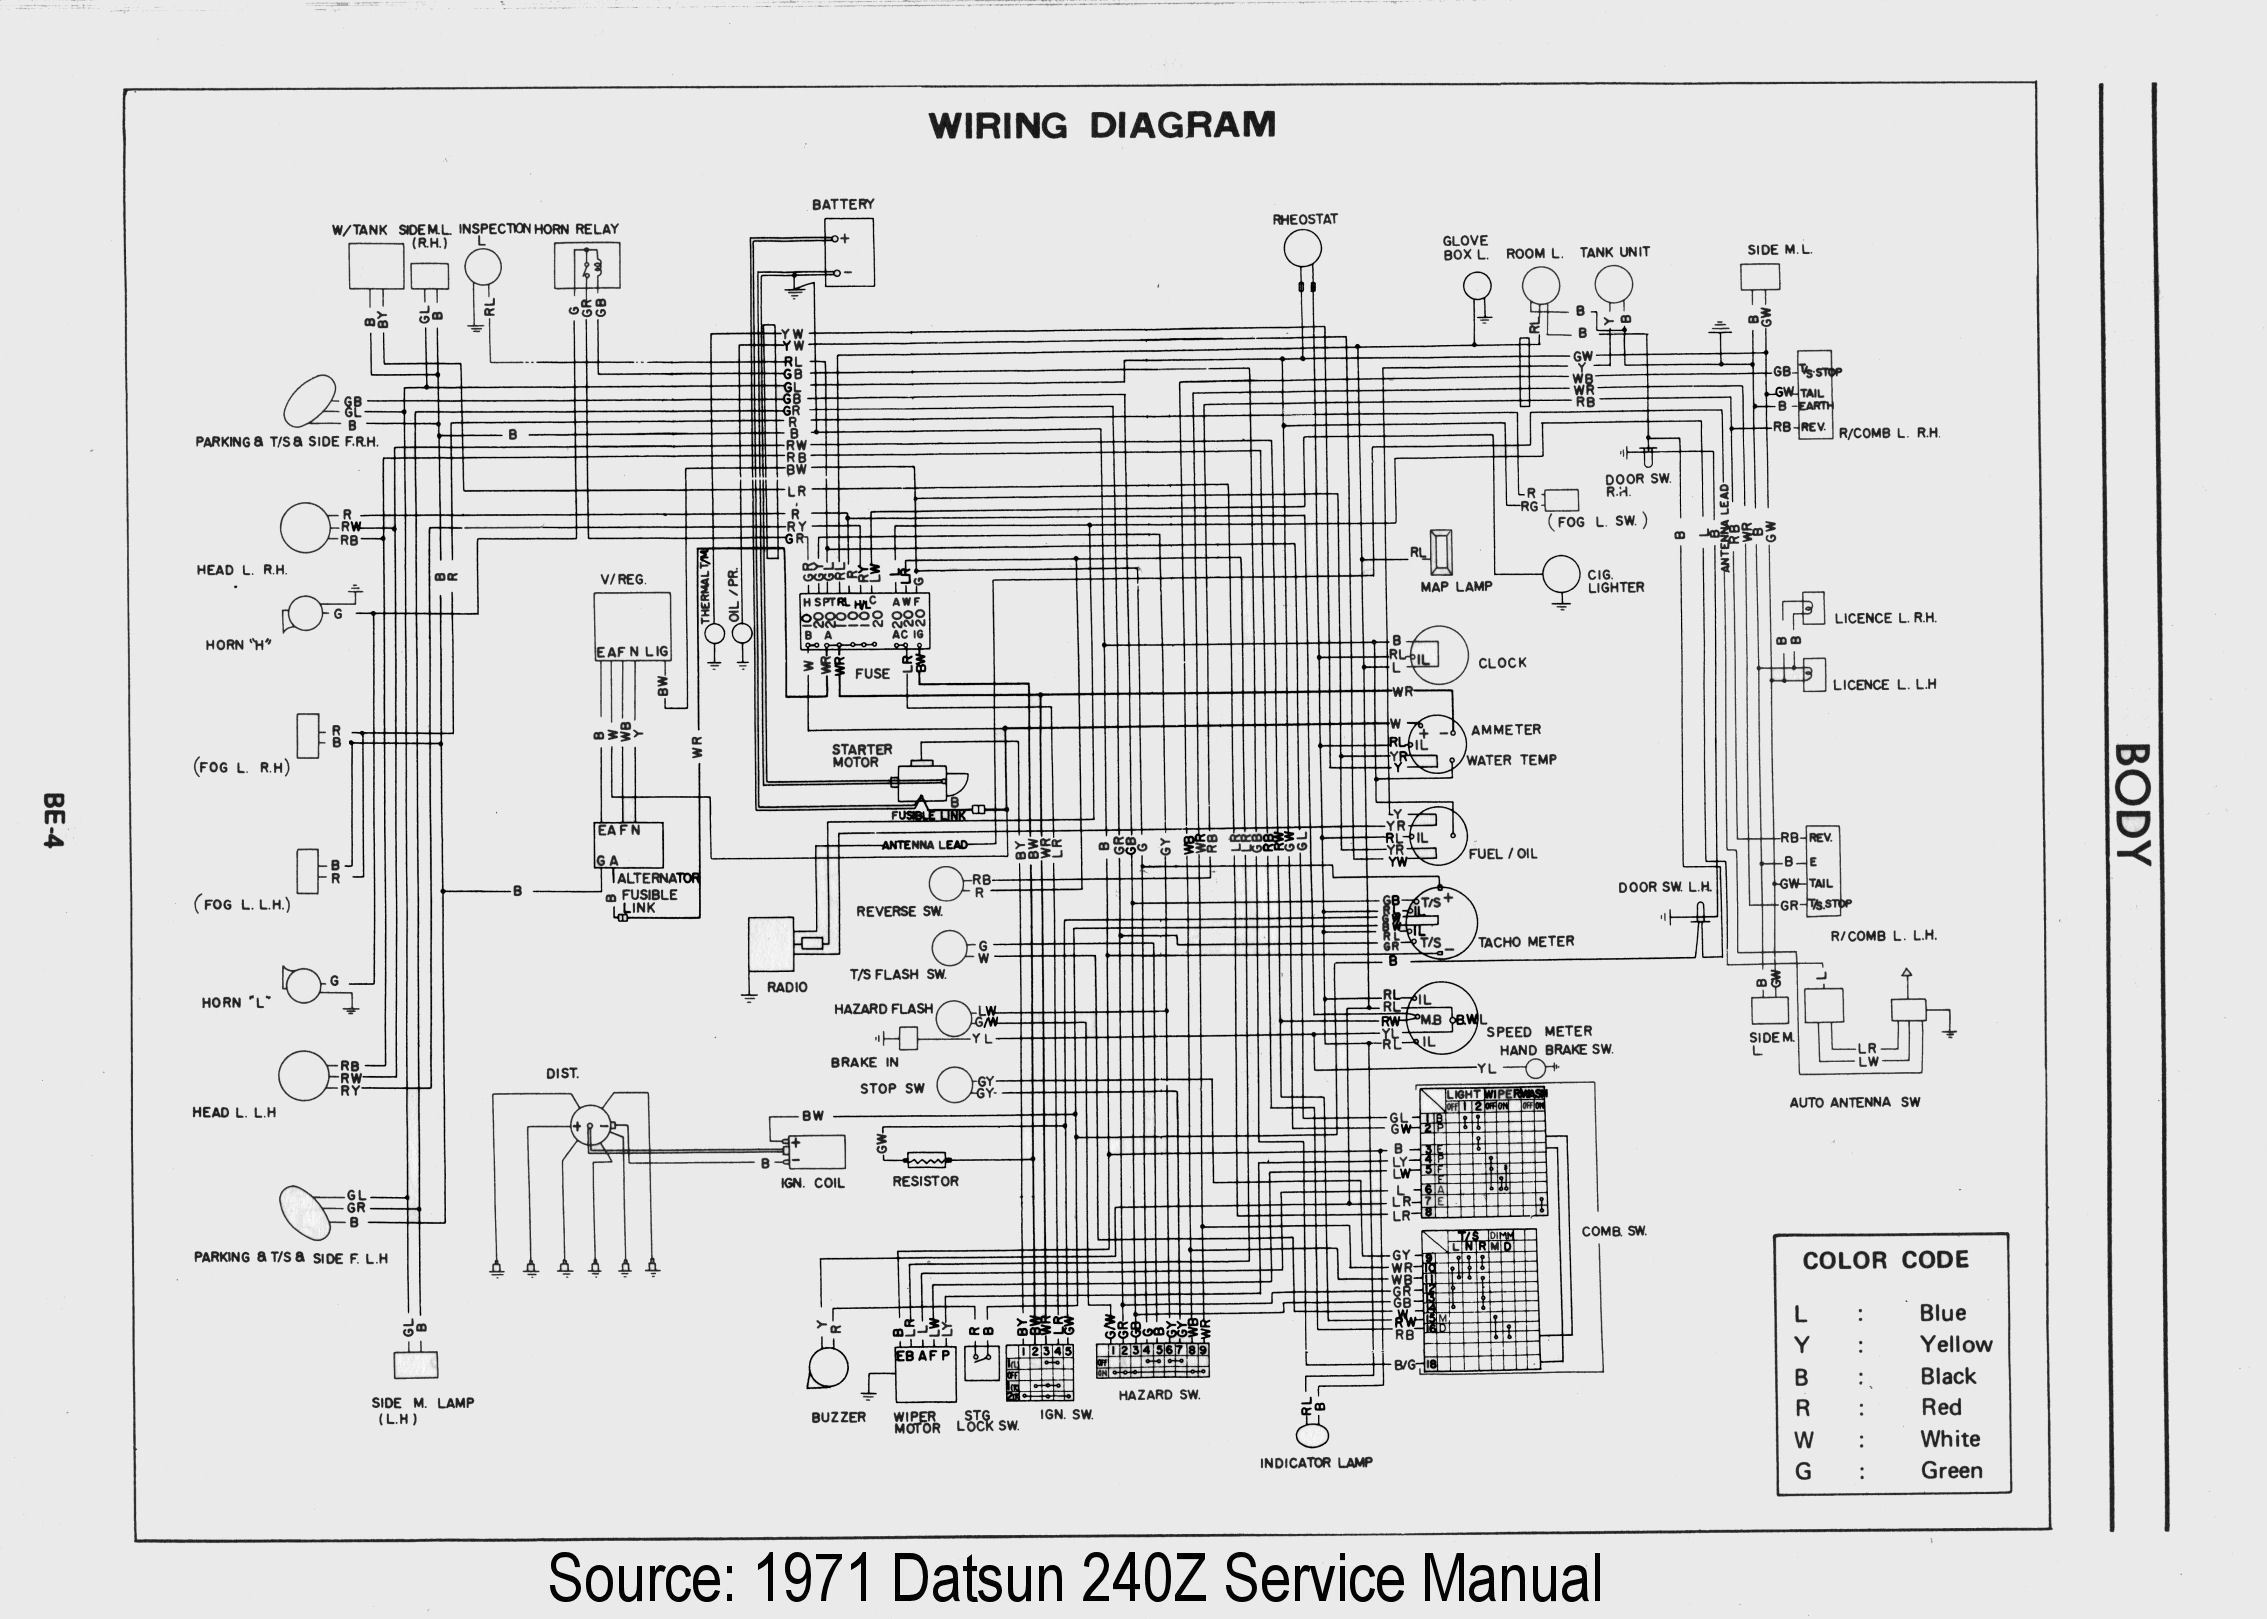 generic wiring diagram wiring diagram detailed crazy cart wiring diagram generic wiring diagram [ 2267 x 1619 Pixel ]